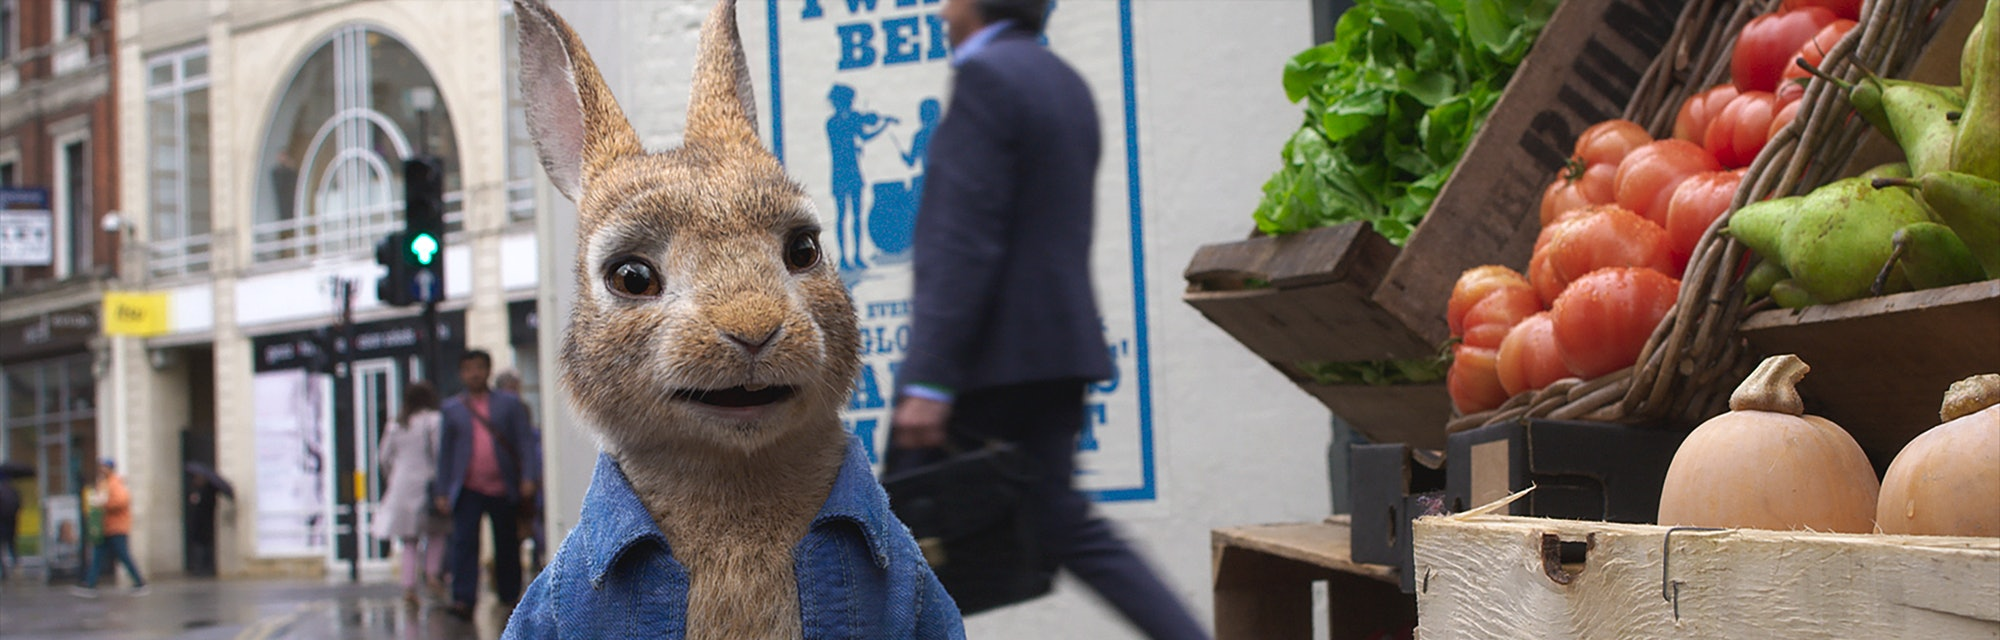 'Peter Rabbit 2: The Runaway' is one of many movies for families coming out in 2021.